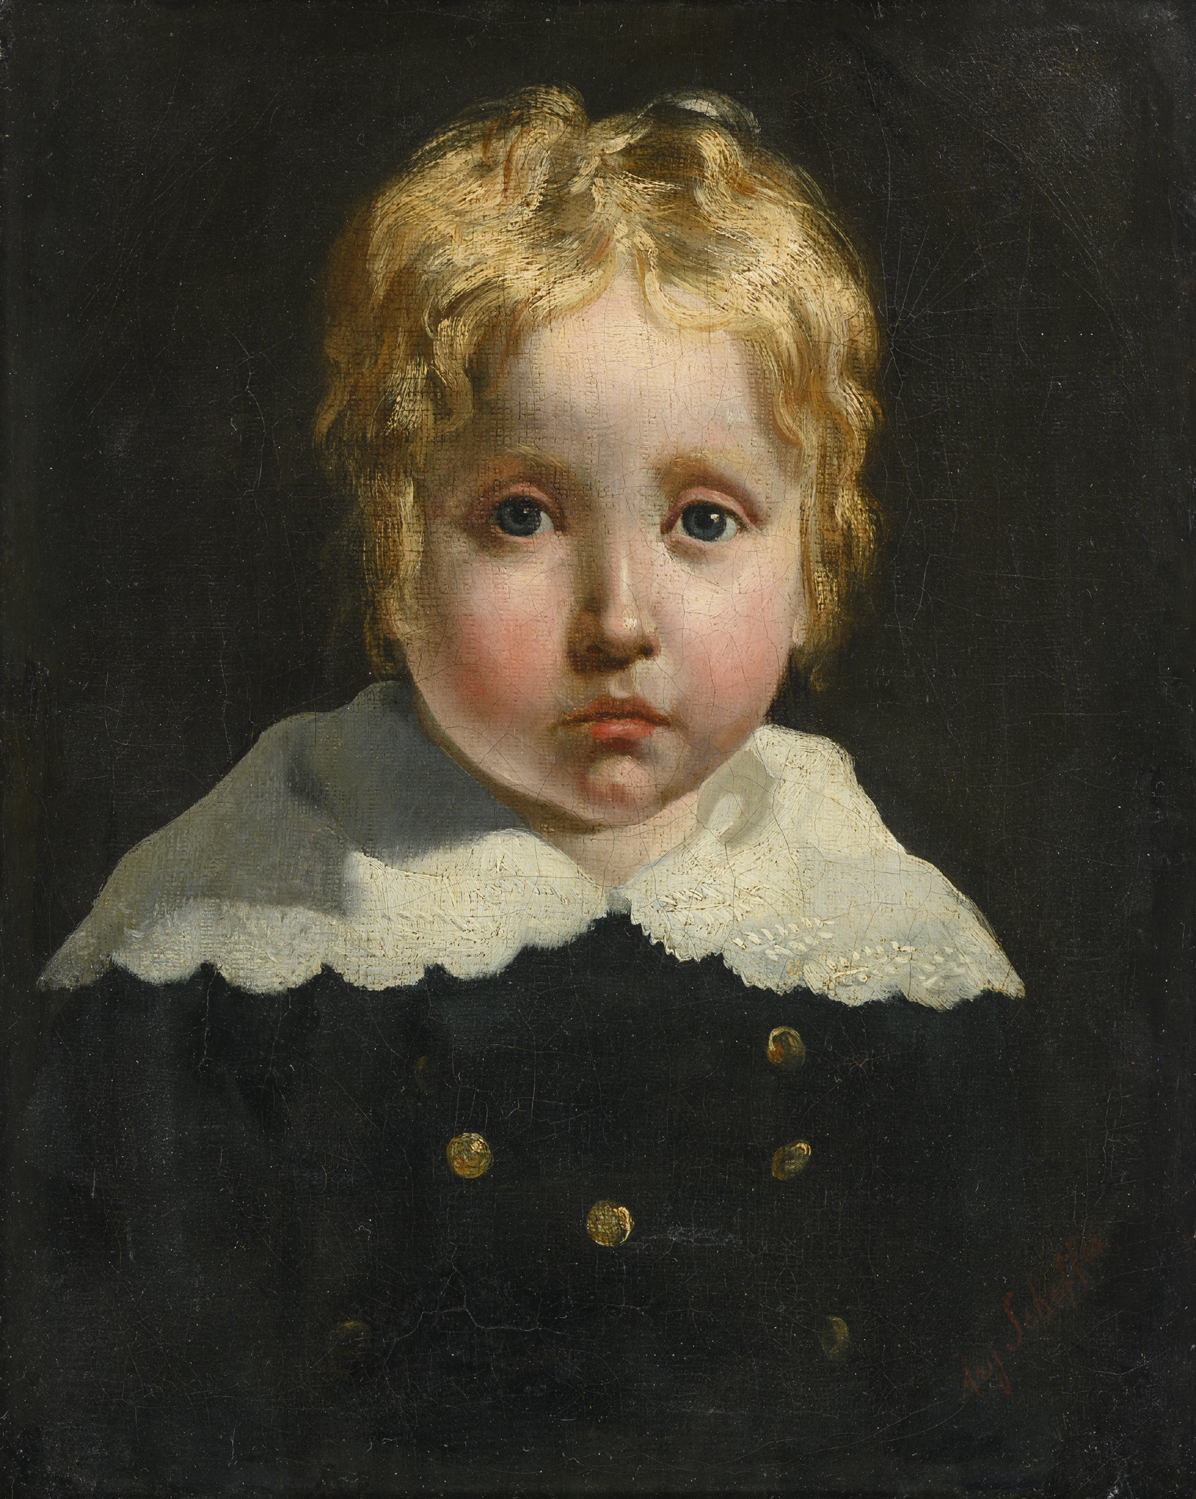 Ary Scheffer | Portrait of a young boy | Kunsthandel Bies | Bies Gallery